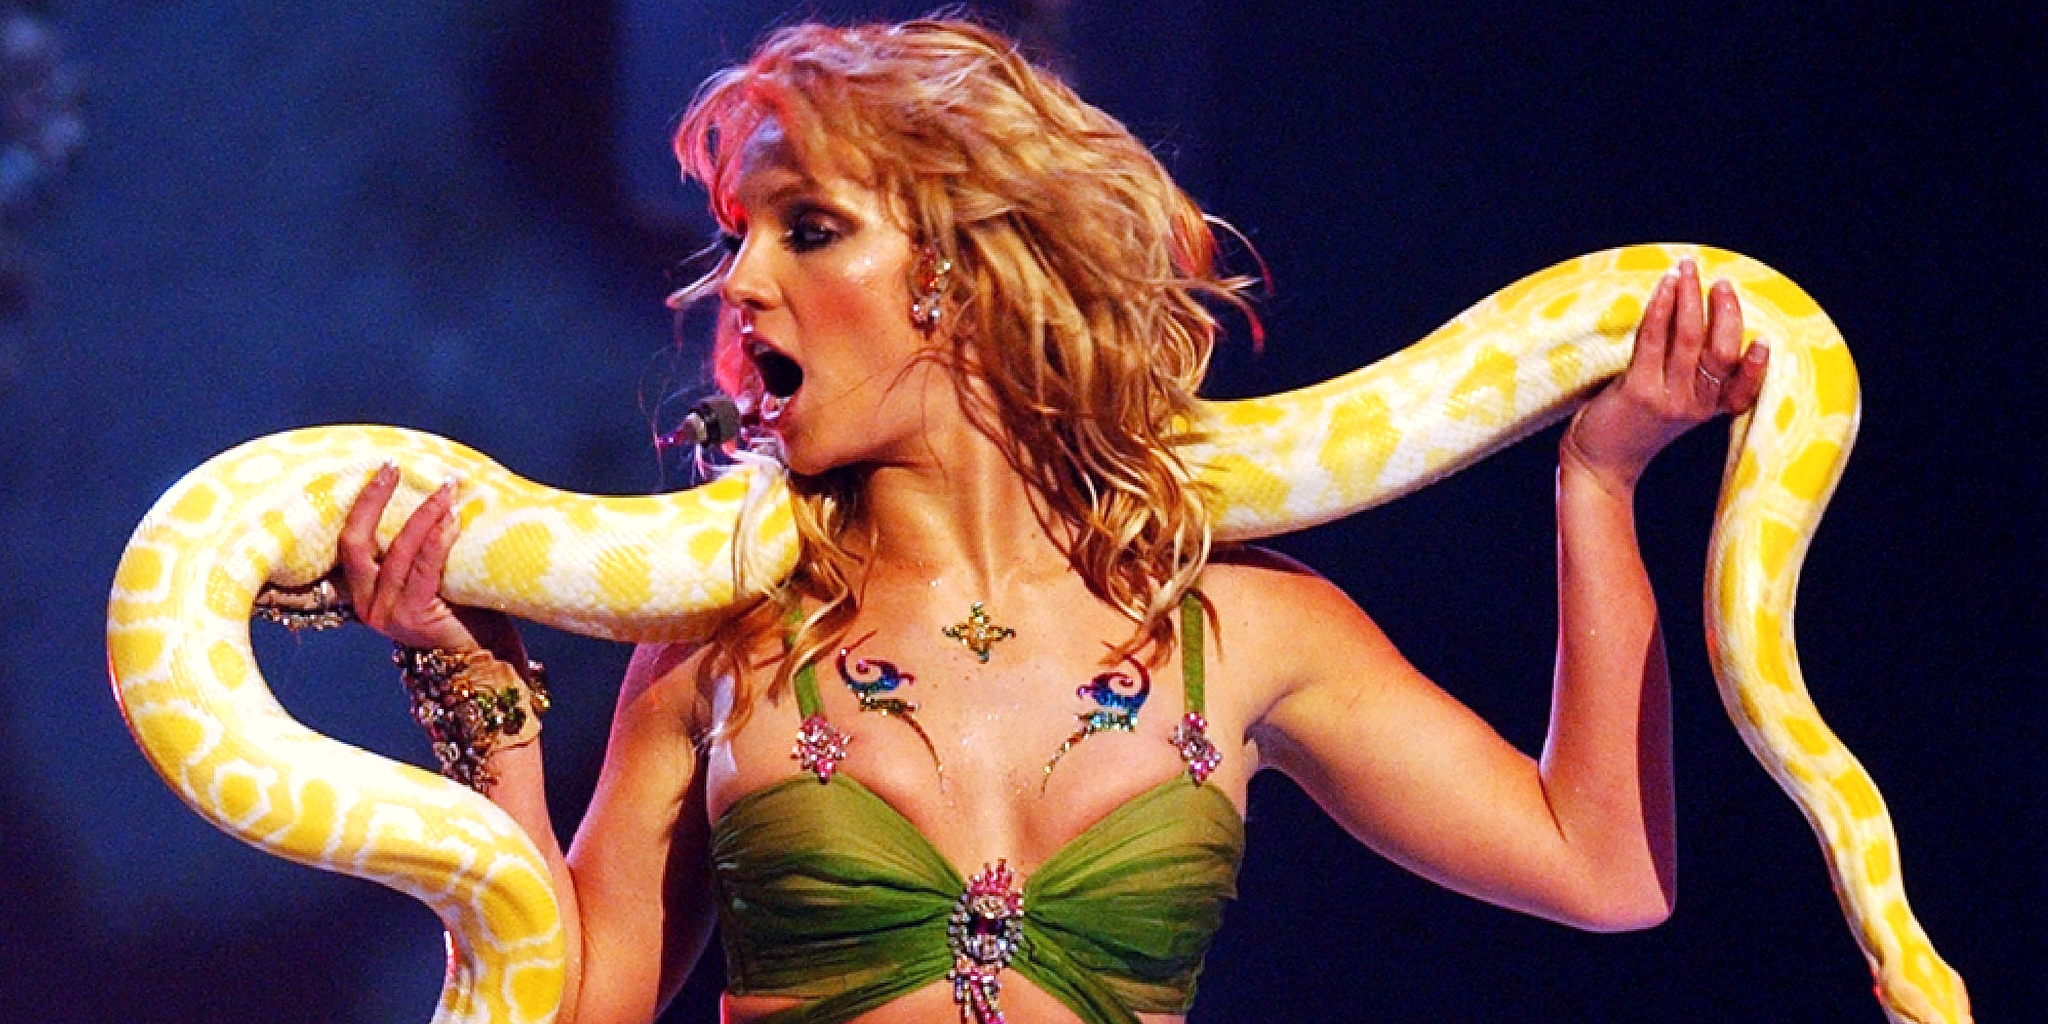 Britney Spears dacing with yellow snake